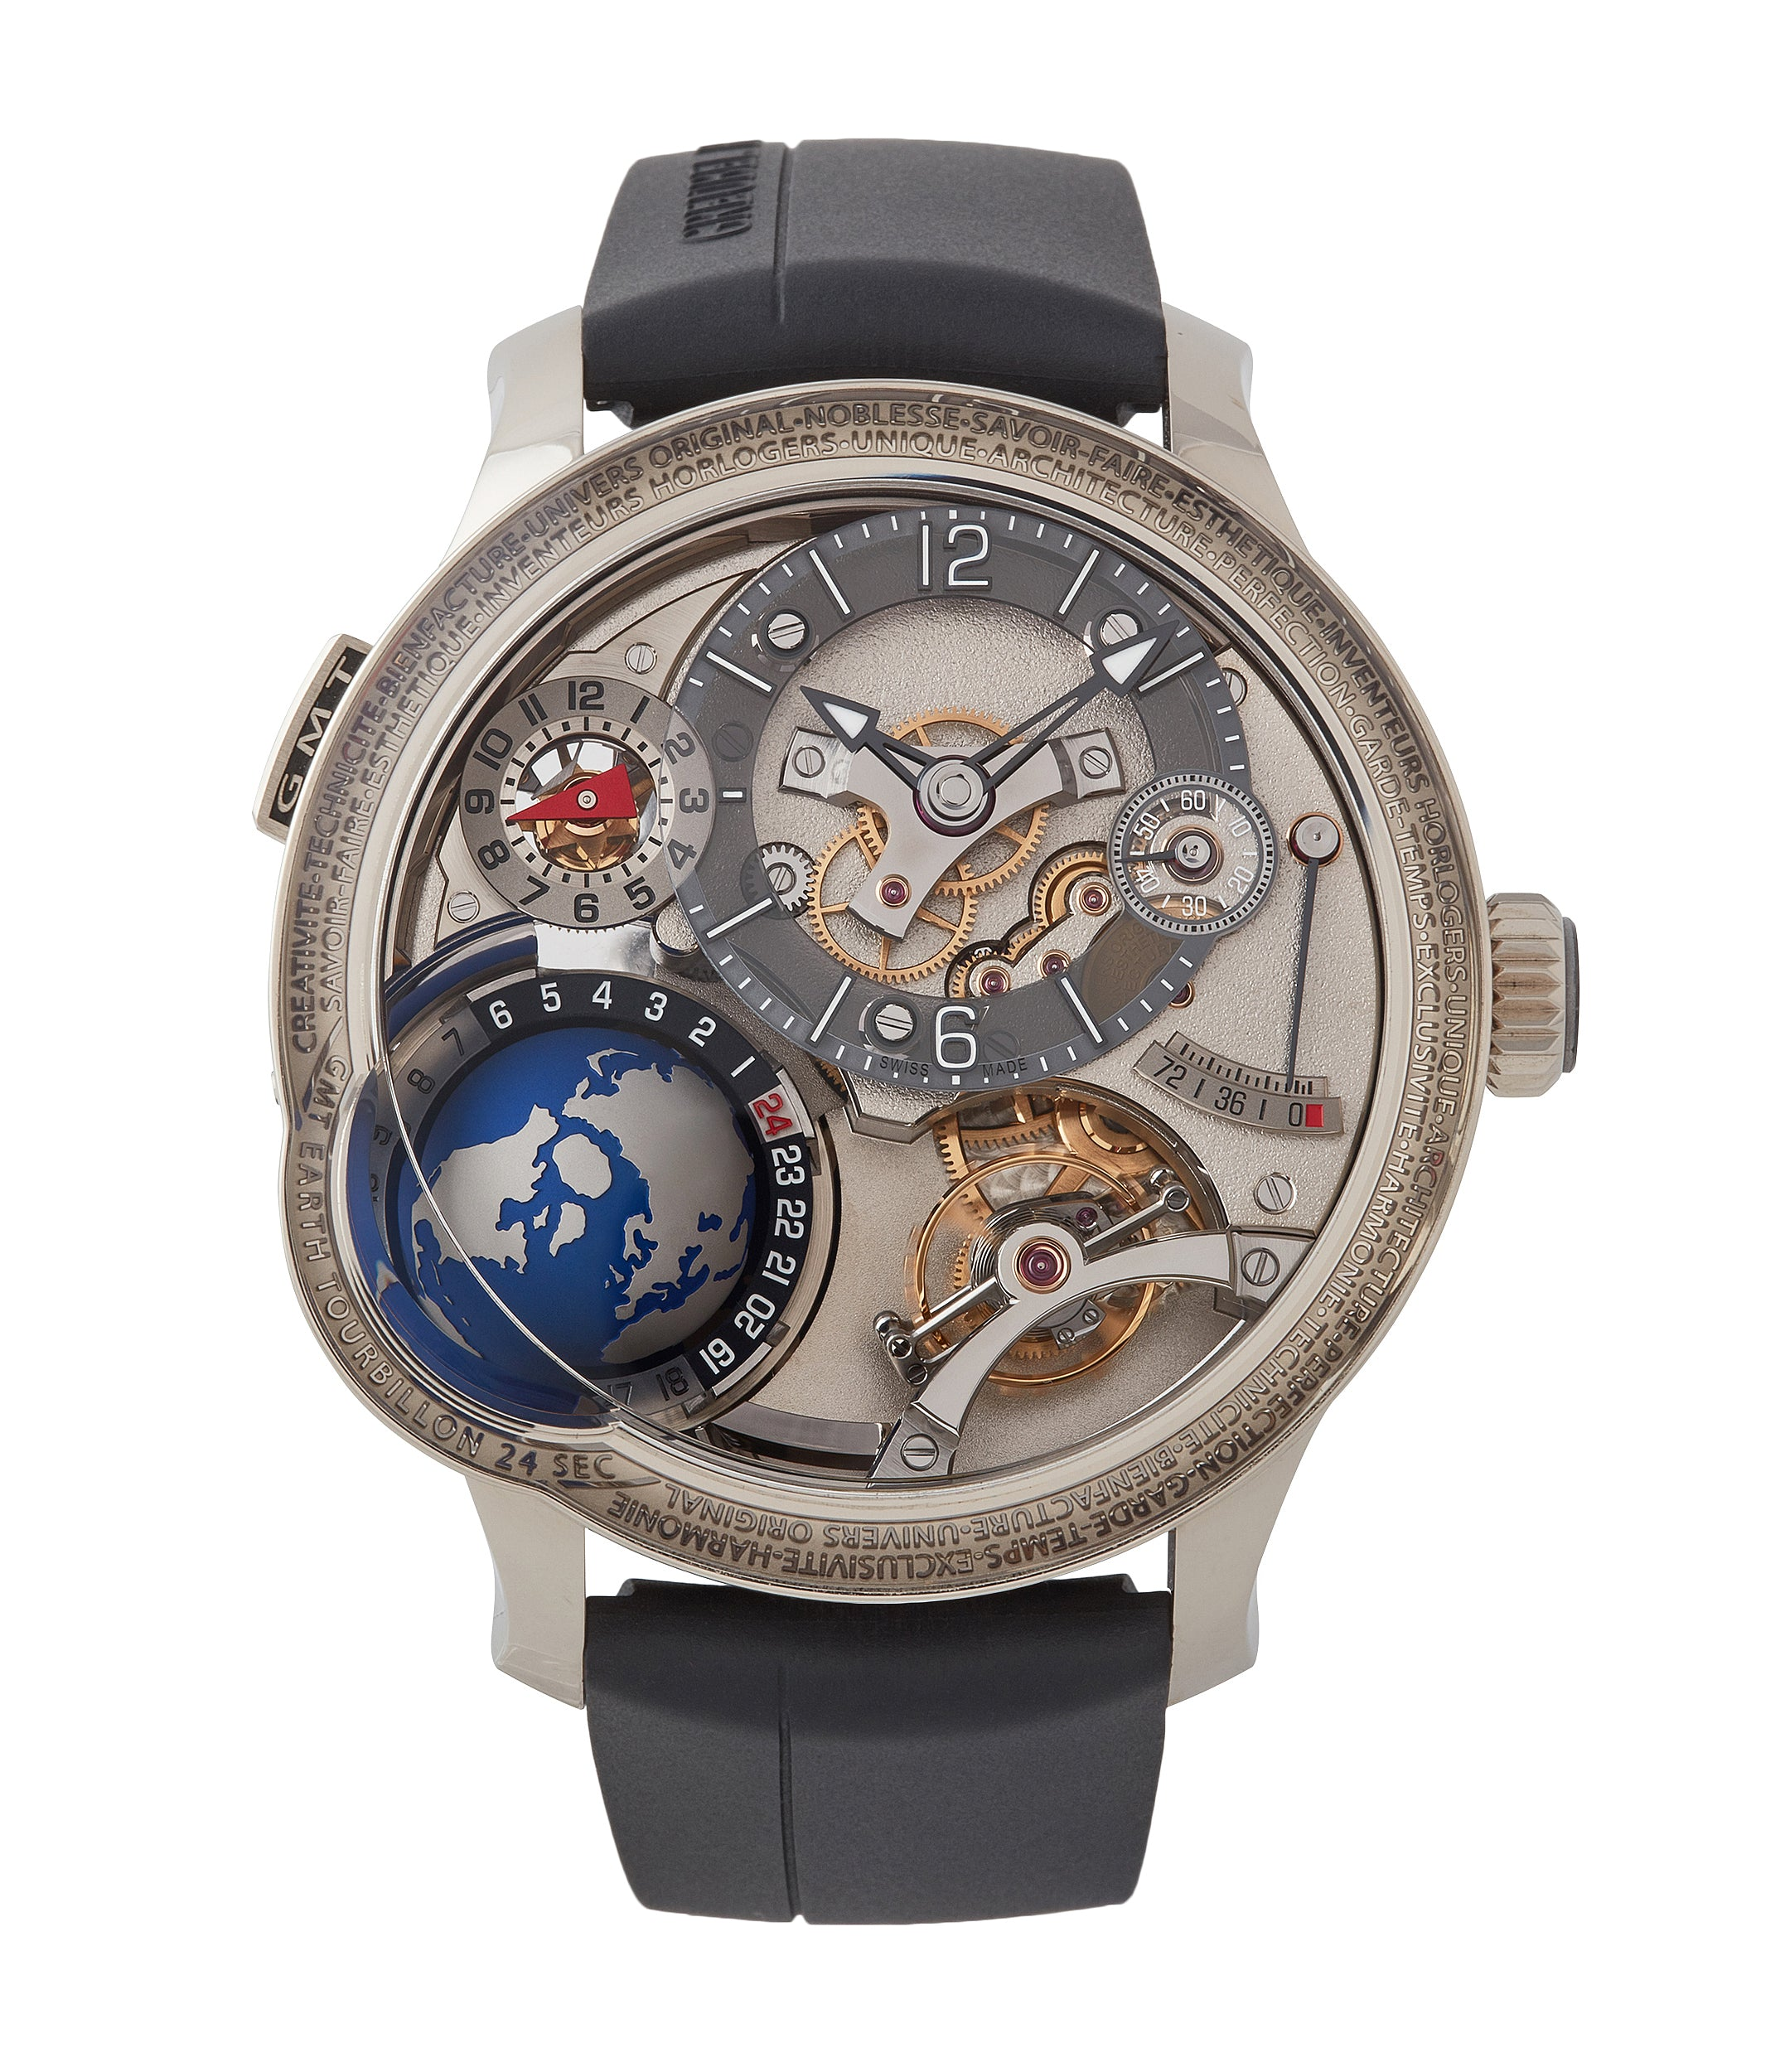 Selling pre-owned rare limited edition GMT Earth in white gold from independent watchmaker Greubel Forsey